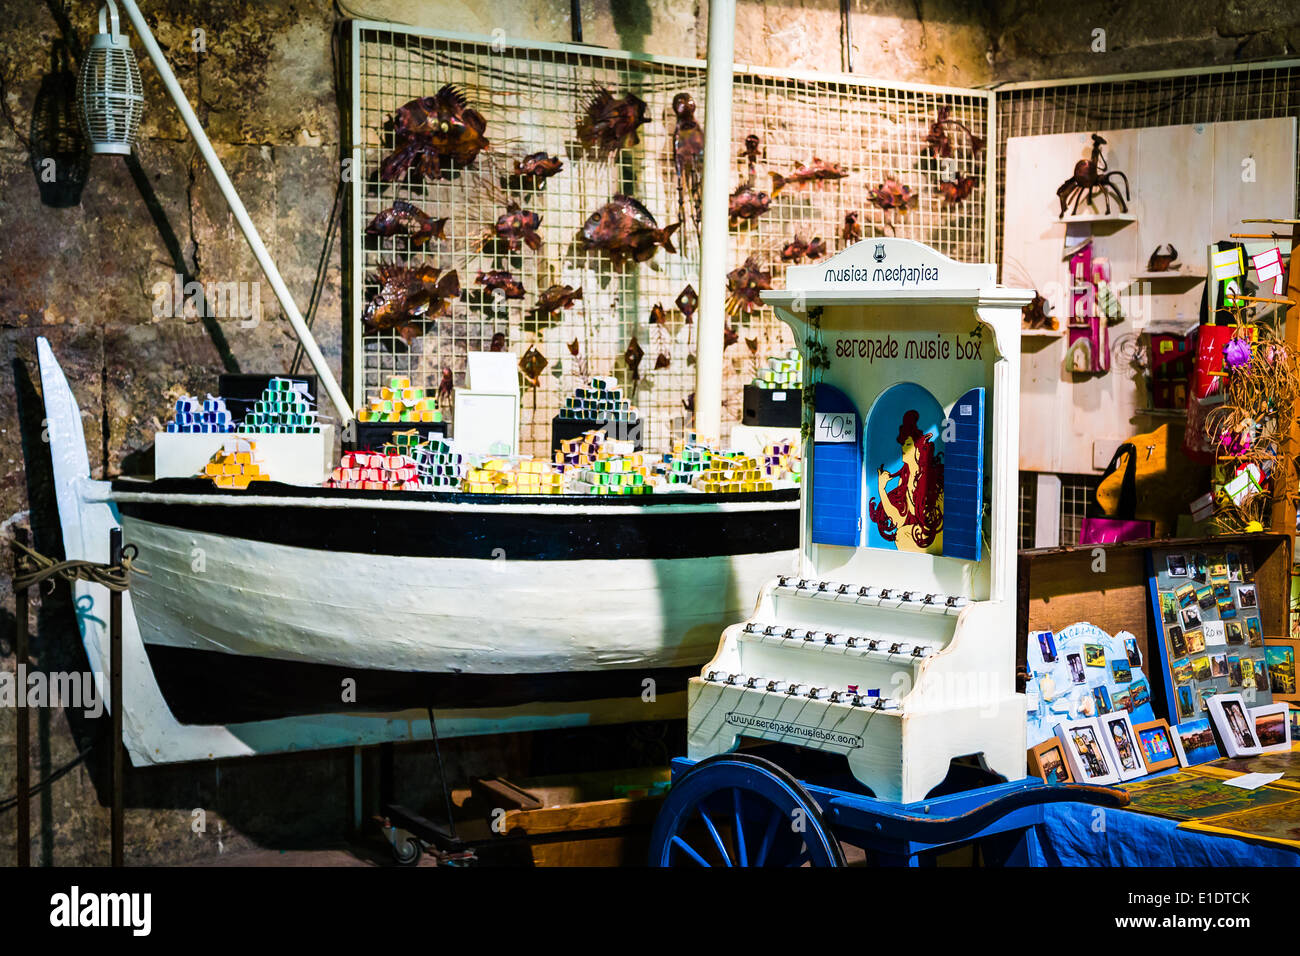 souvenirs and mementos are sold to tourists in diocletian's palace - Stock Image